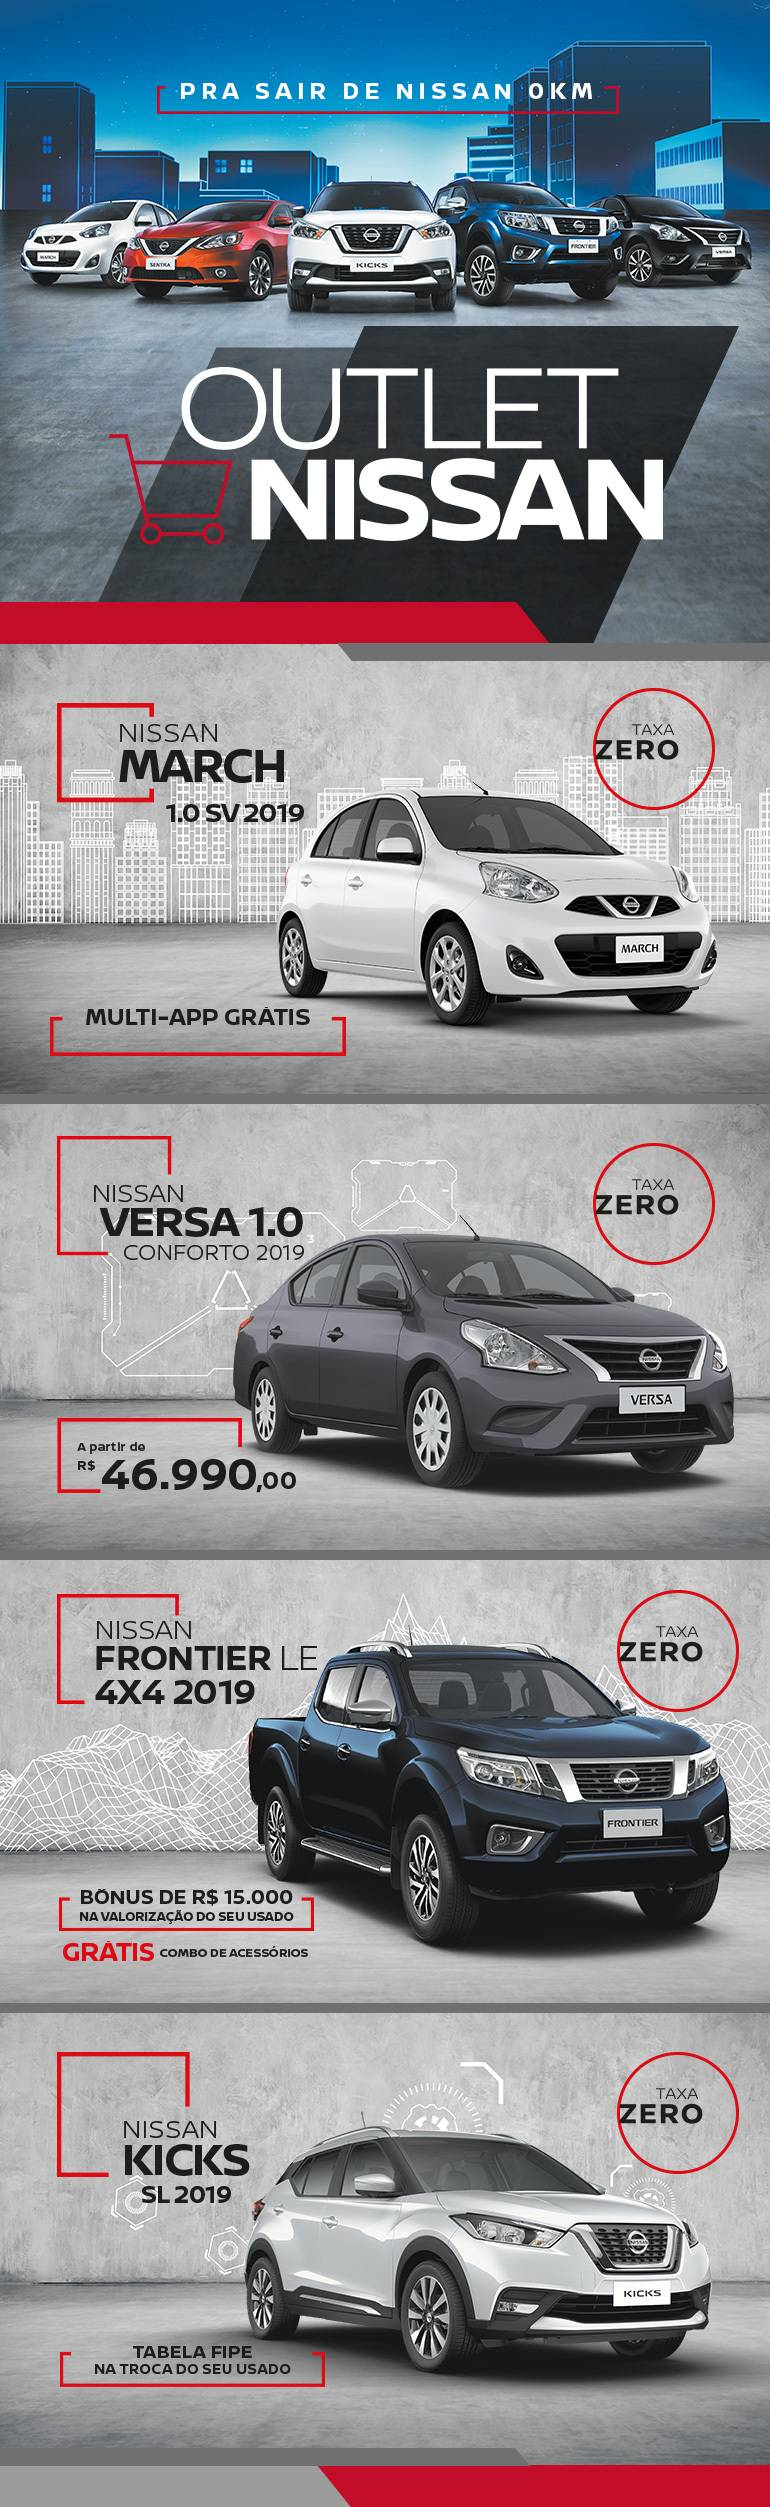 Outlet Nissan - Maio 2019